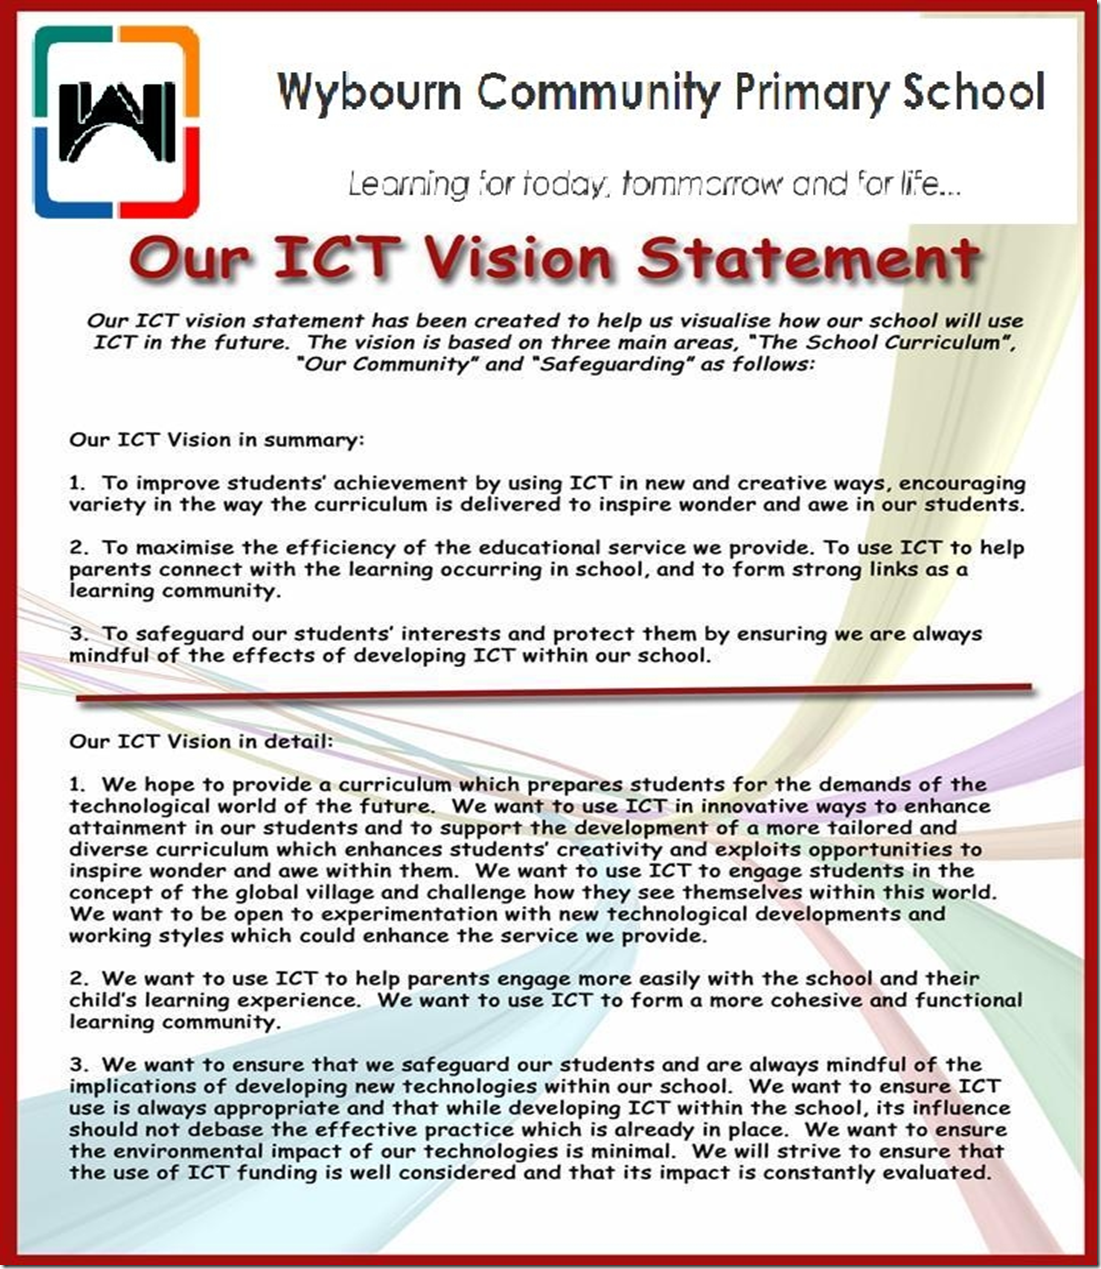 My vision statement for ict